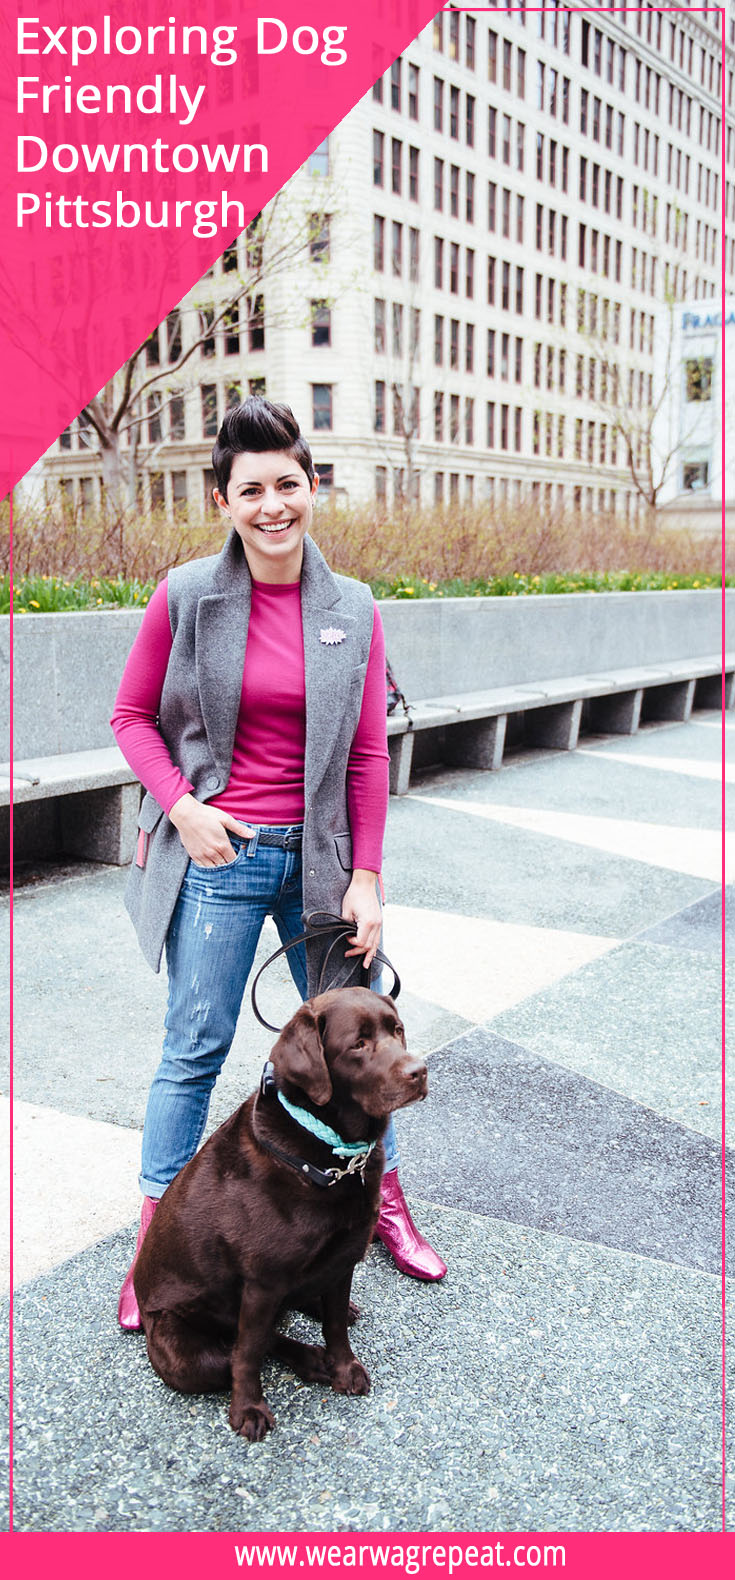 Dog Friendly Downtown Pittsburgh